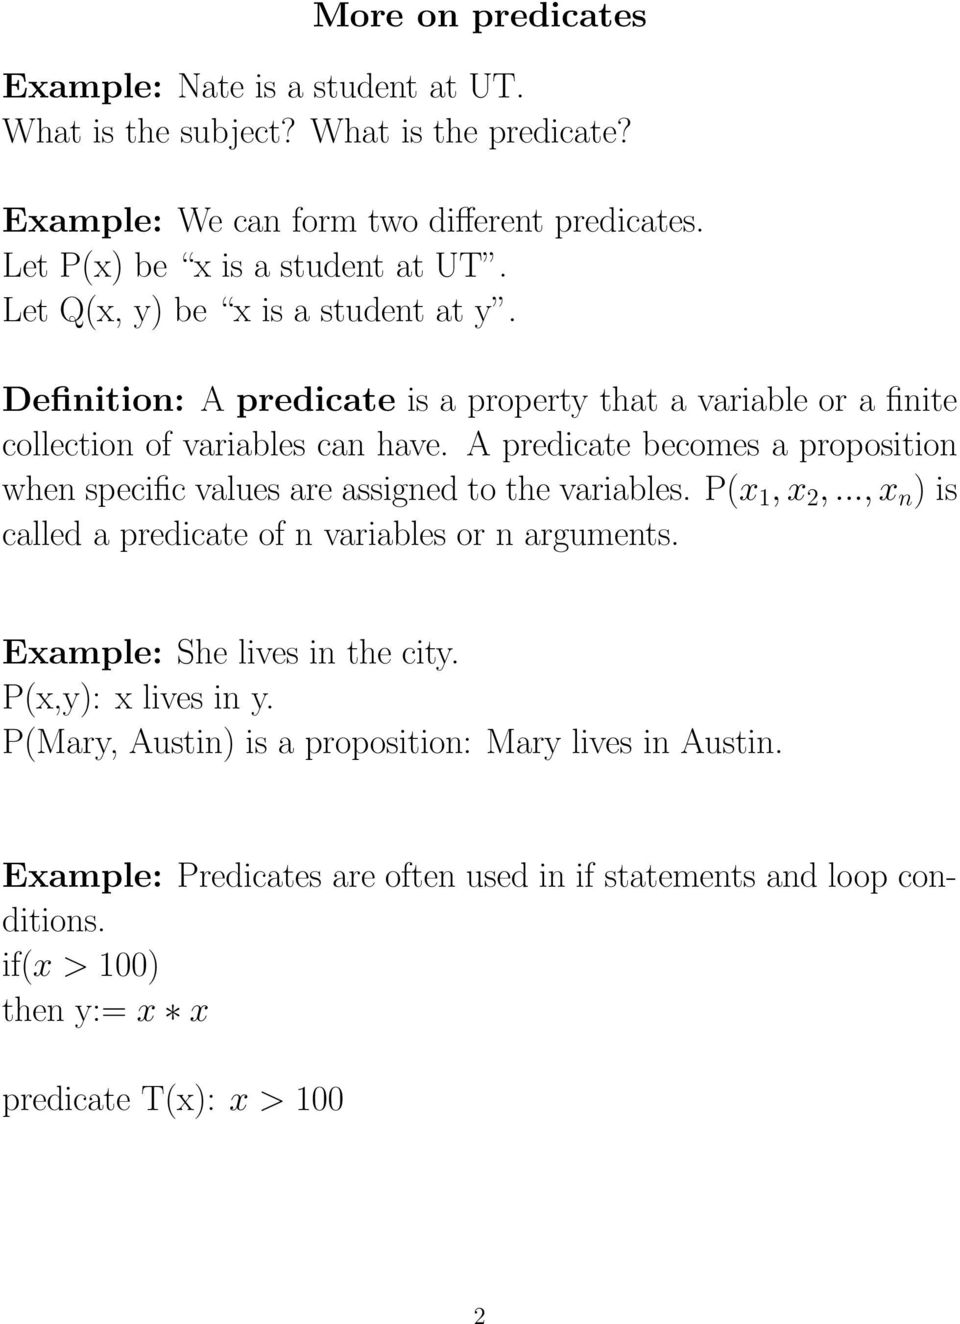 A predicate becomes a proposition when specific values are assigned to the variables. P(x 1, x 2,..., x n ) is called a predicate of n variables or n arguments.